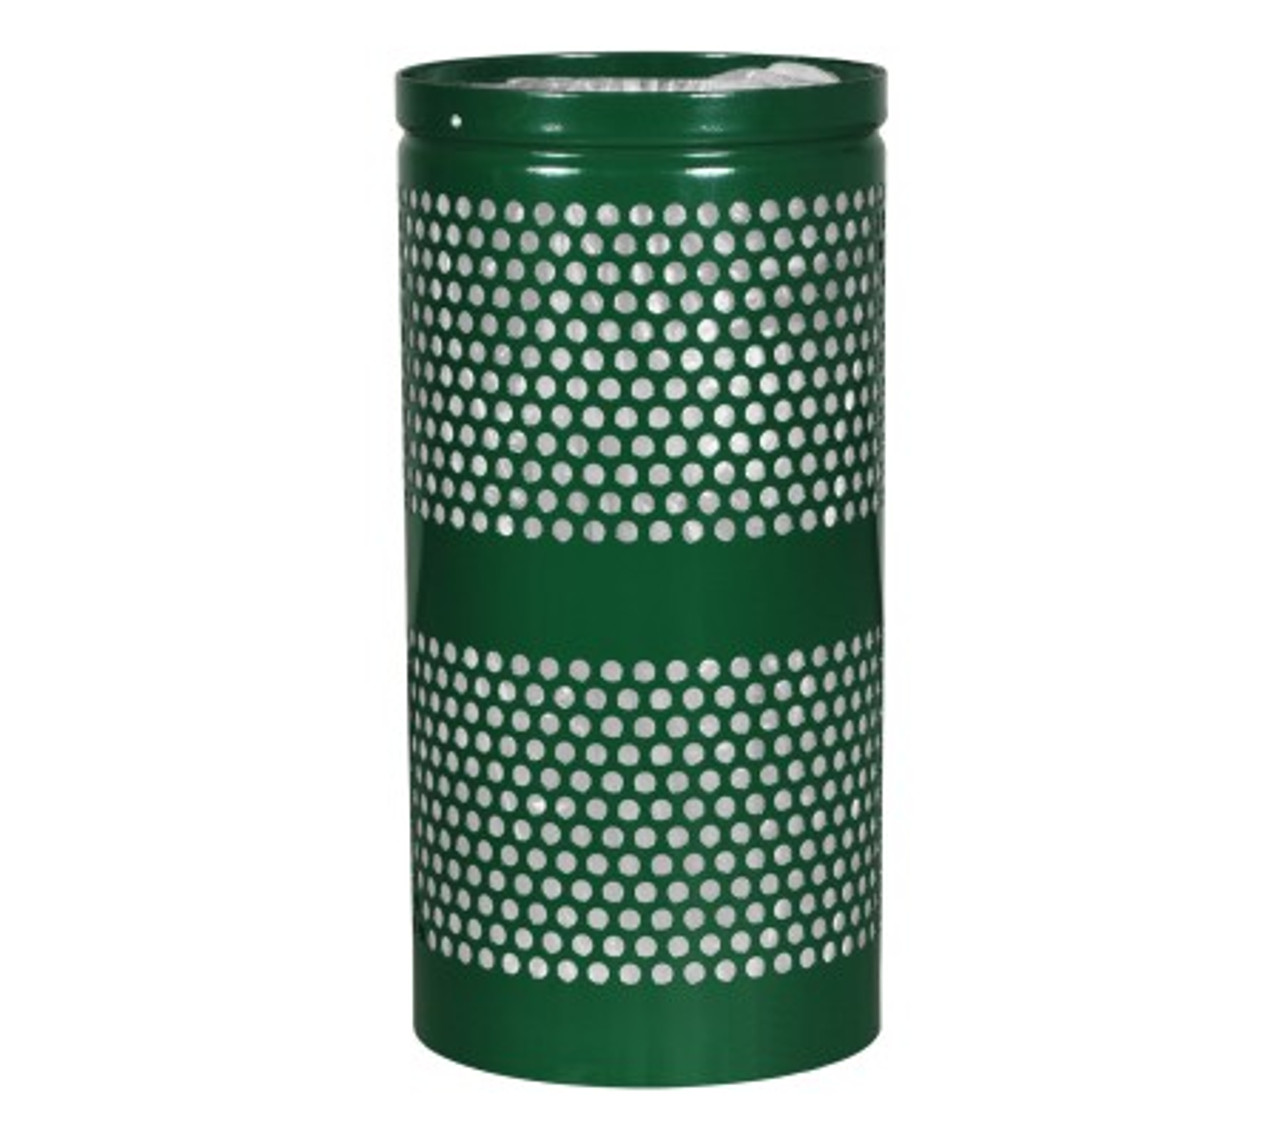 Excell Landscape Outdoor Perforated Trash Can WR34 in Hunter Green Gloss